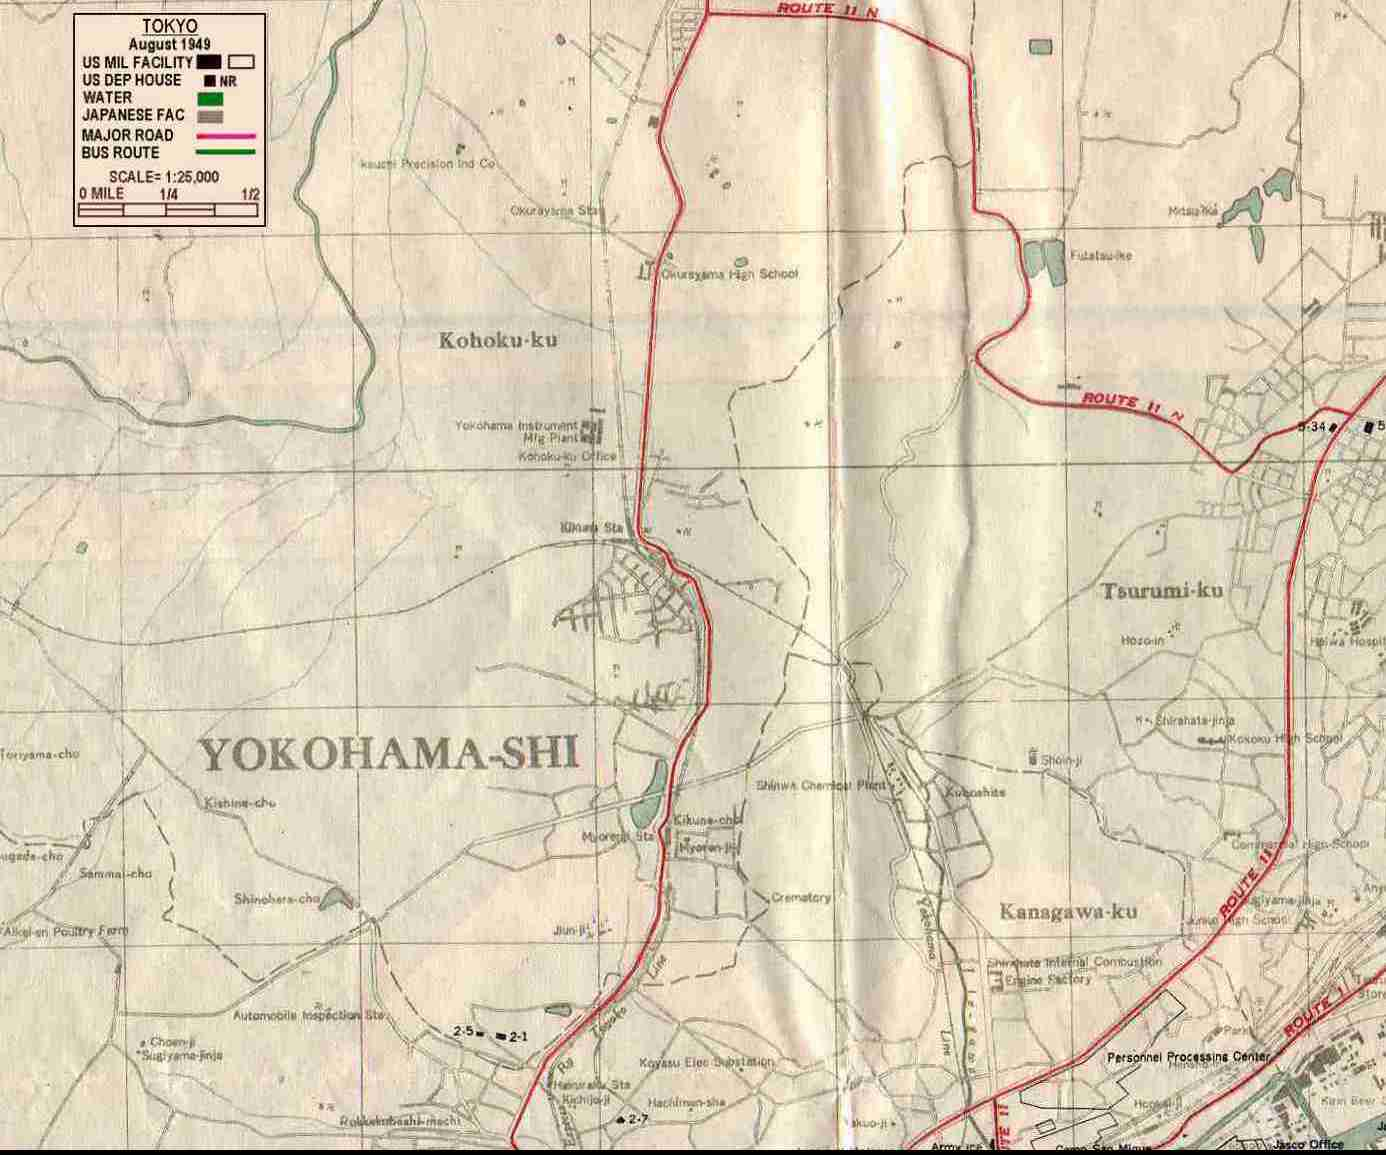 1949 Yokohama map